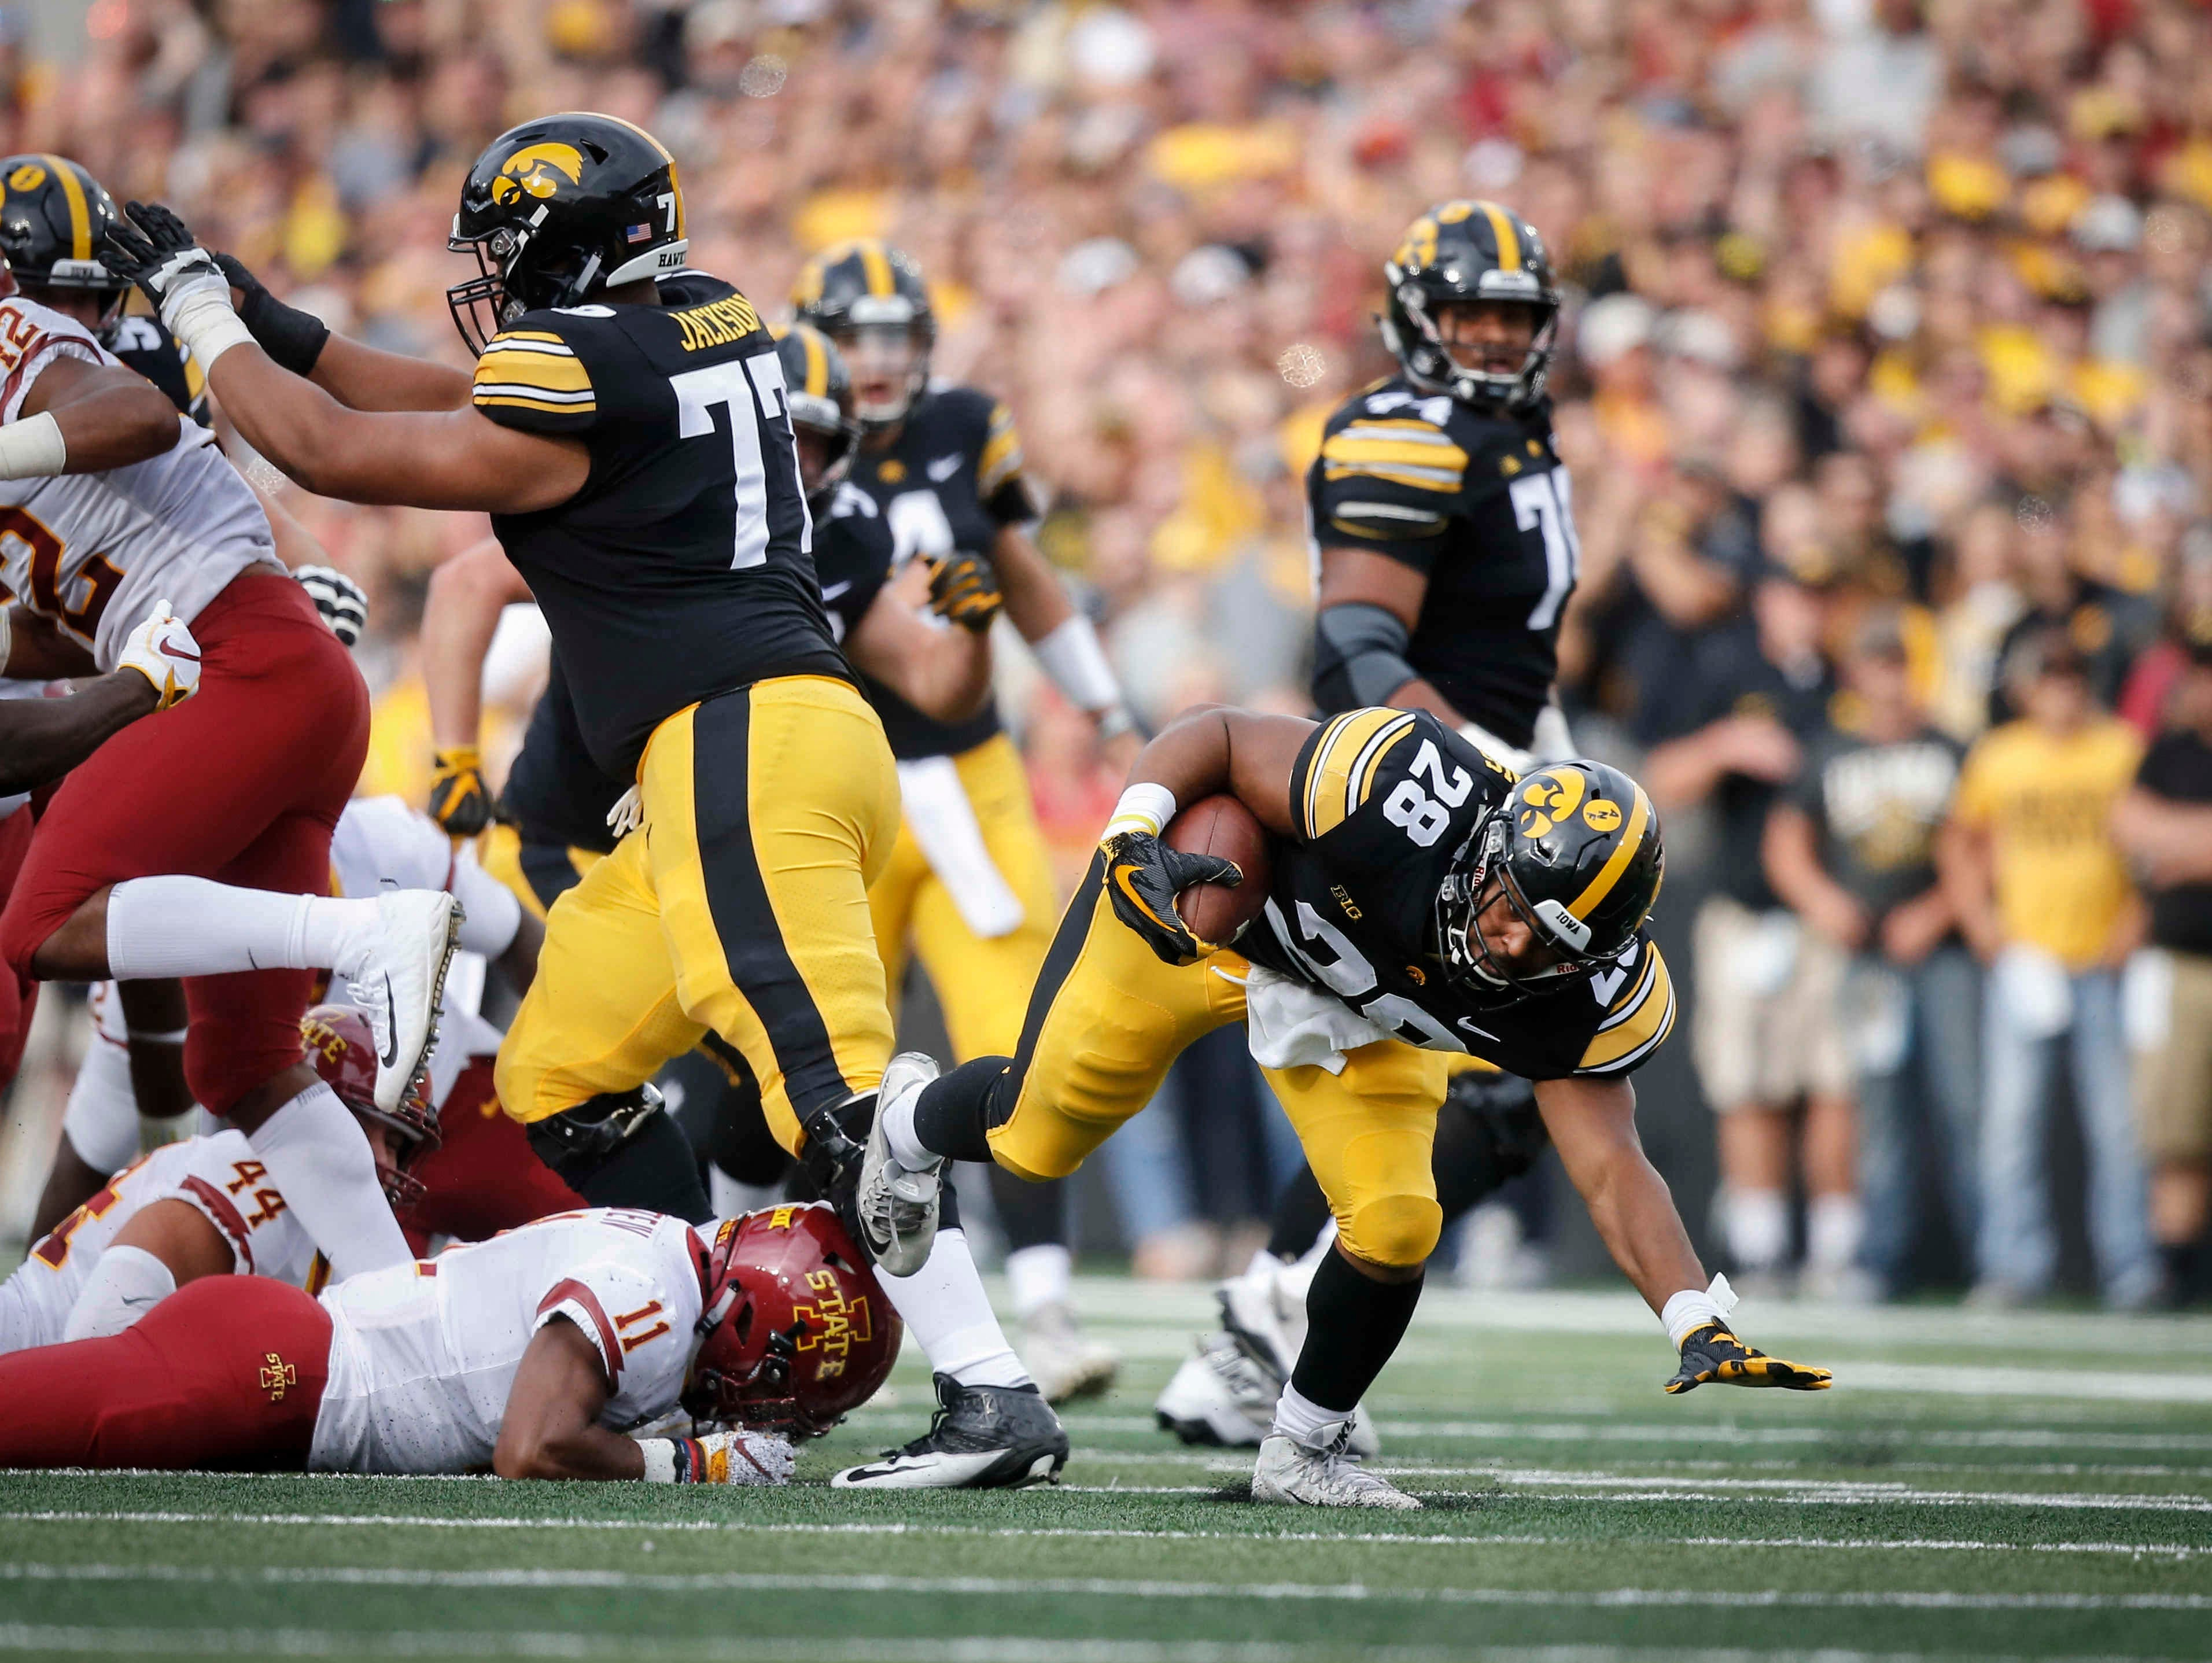 Iowa running back Toren Young runs the ball up the middle against Iowa State on Saturday, Sept. 8, 2018, at Kinnick Stadium in Iowa City.